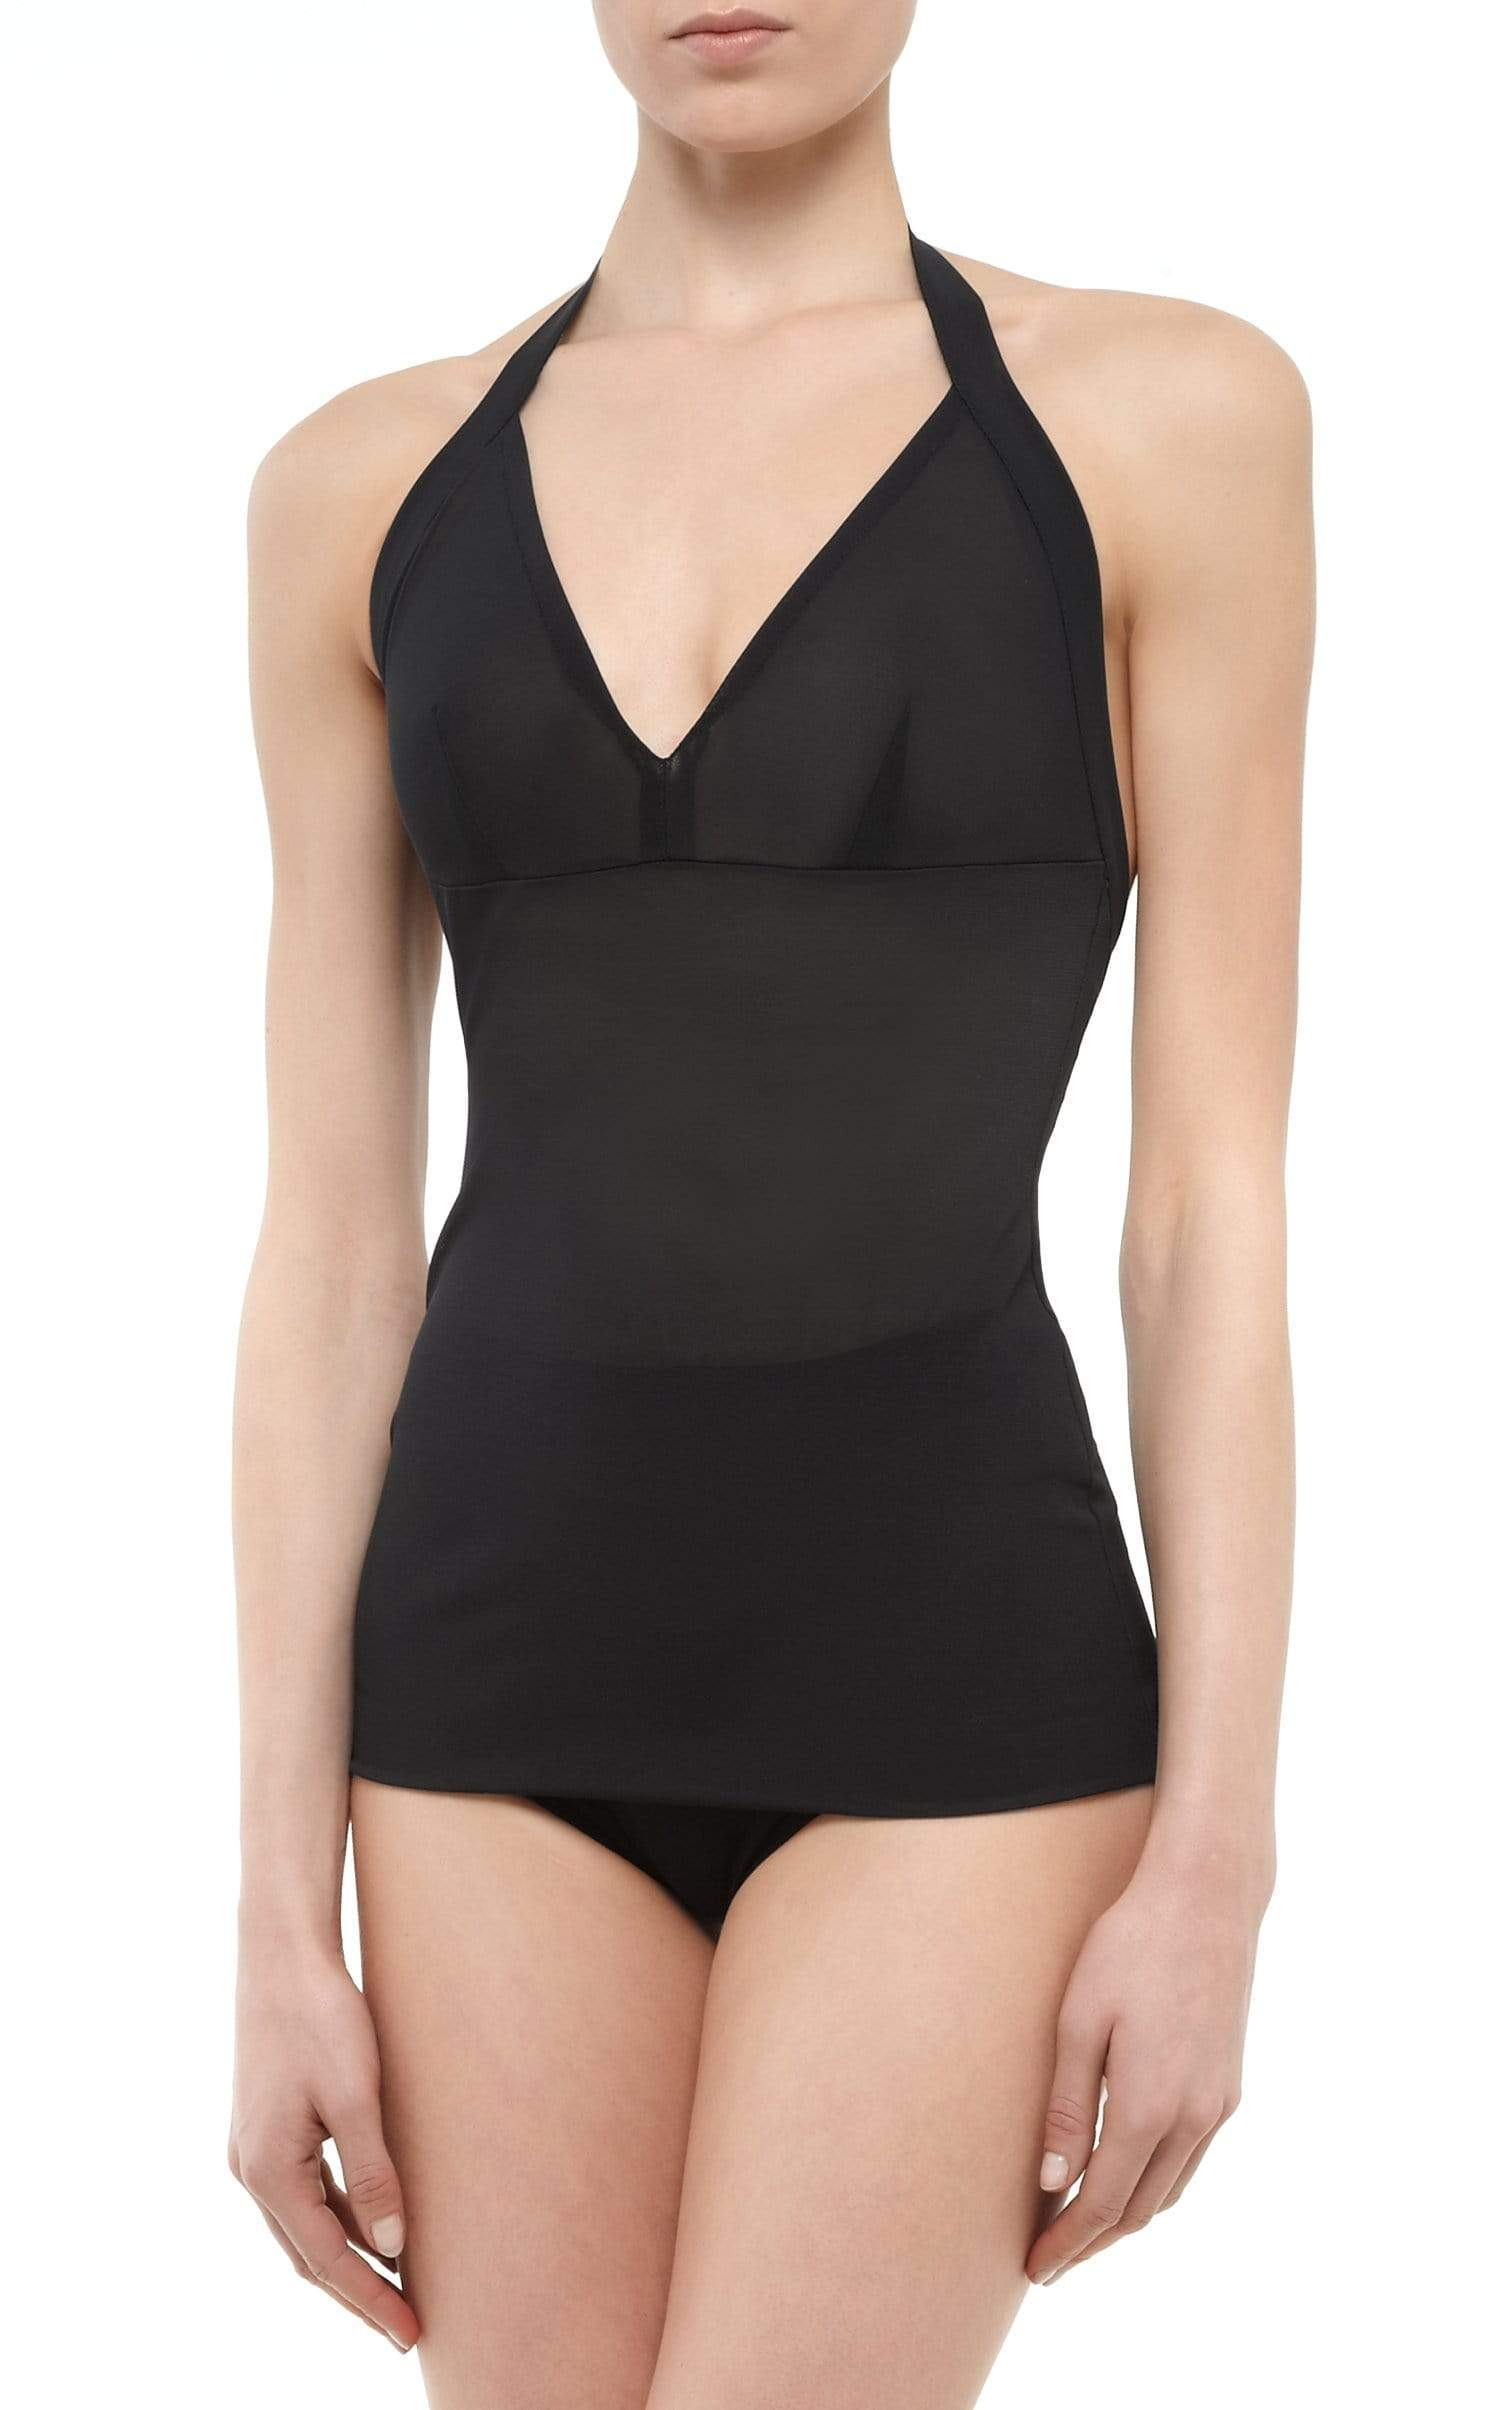 Powermesh Halter Top In Black from Roland Mouret